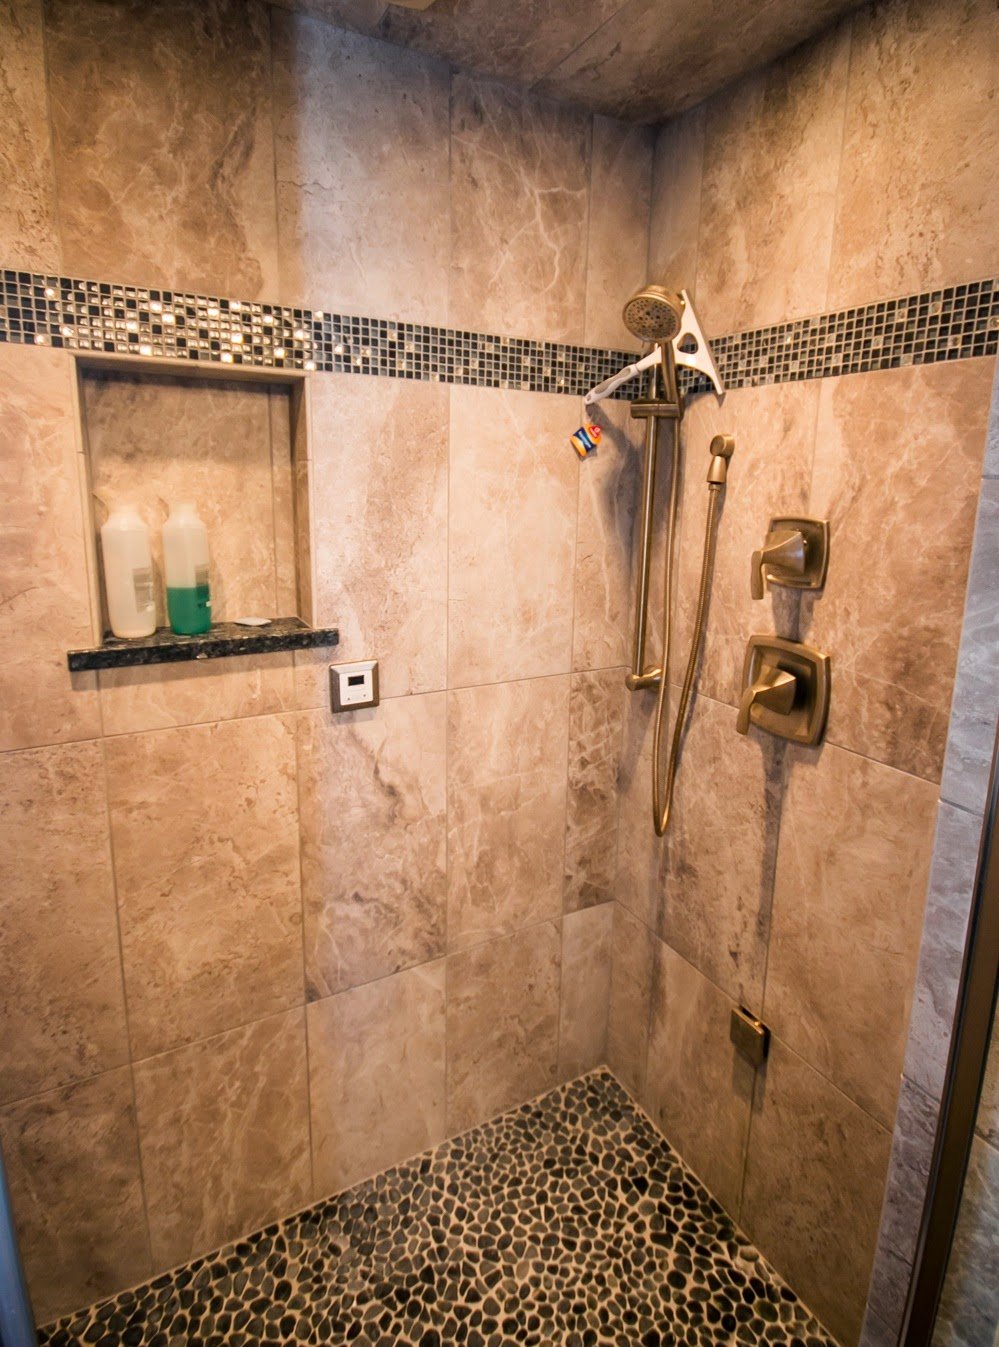 bathroom remodeling trends for 2015 an outdated bathroom can be an eyesore for many homeowners though style is important its not the only consideration